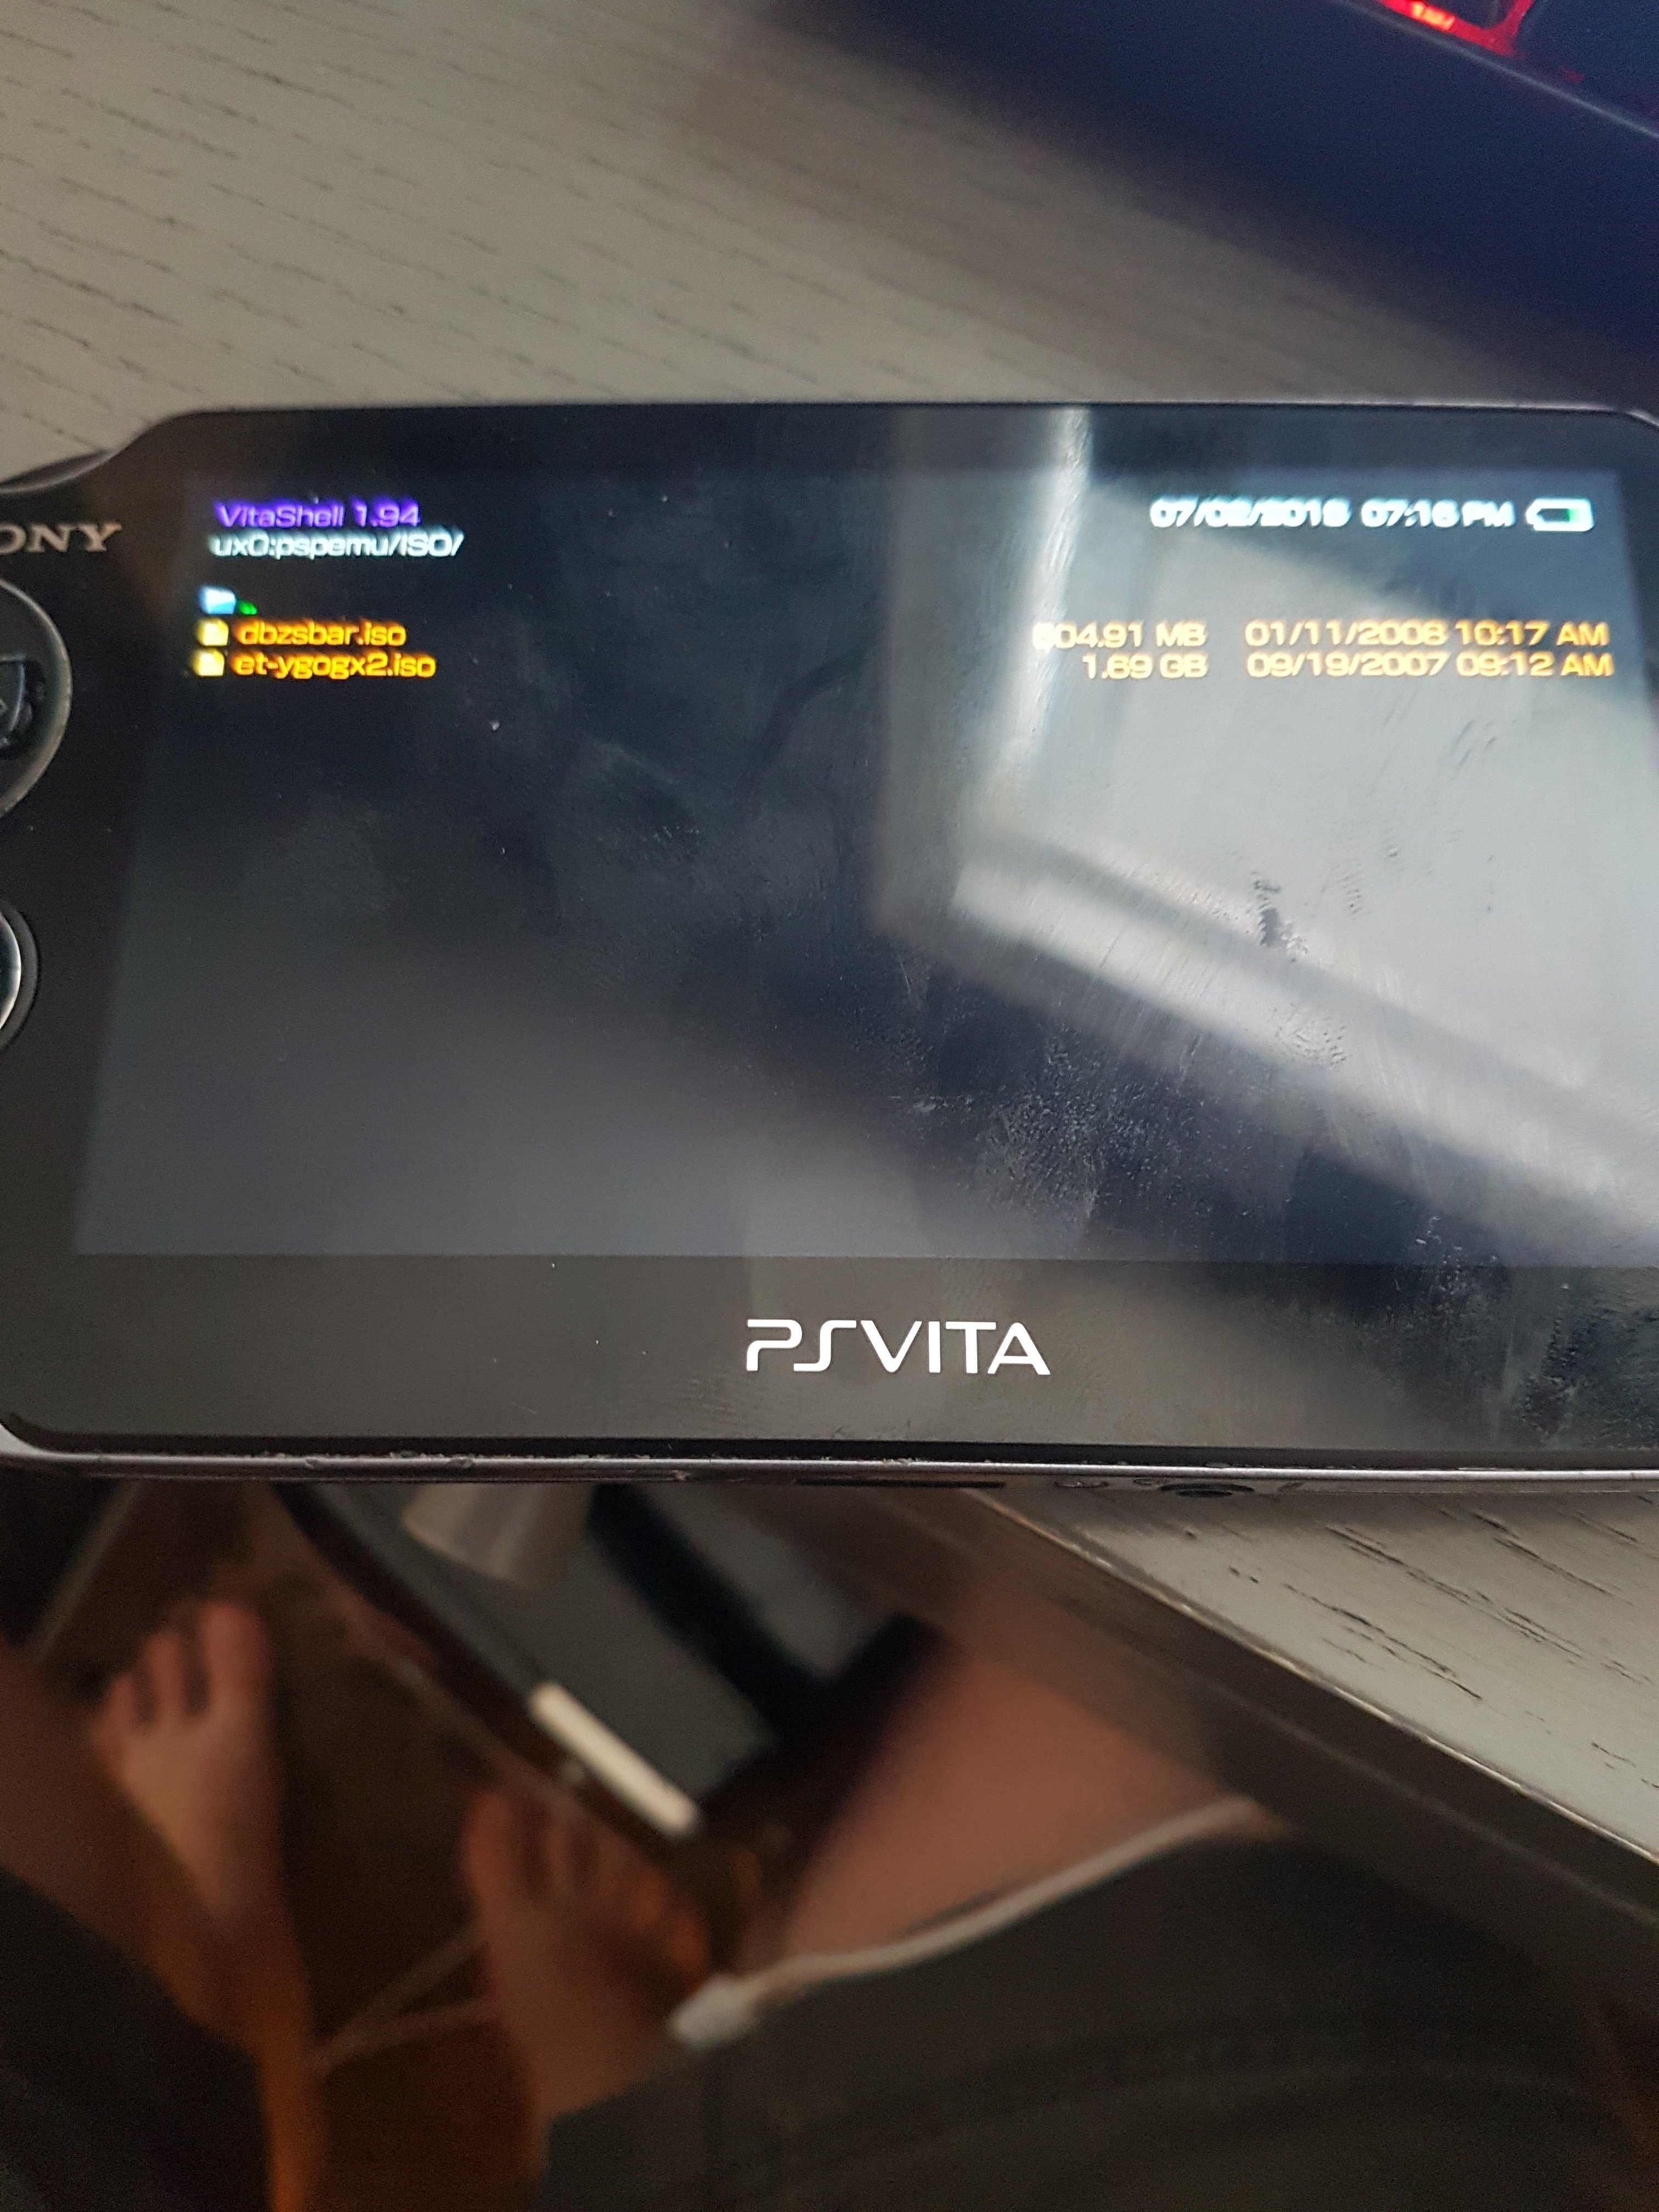 Adrenaline can't see PSP/PS1 games put into vitashell via PC